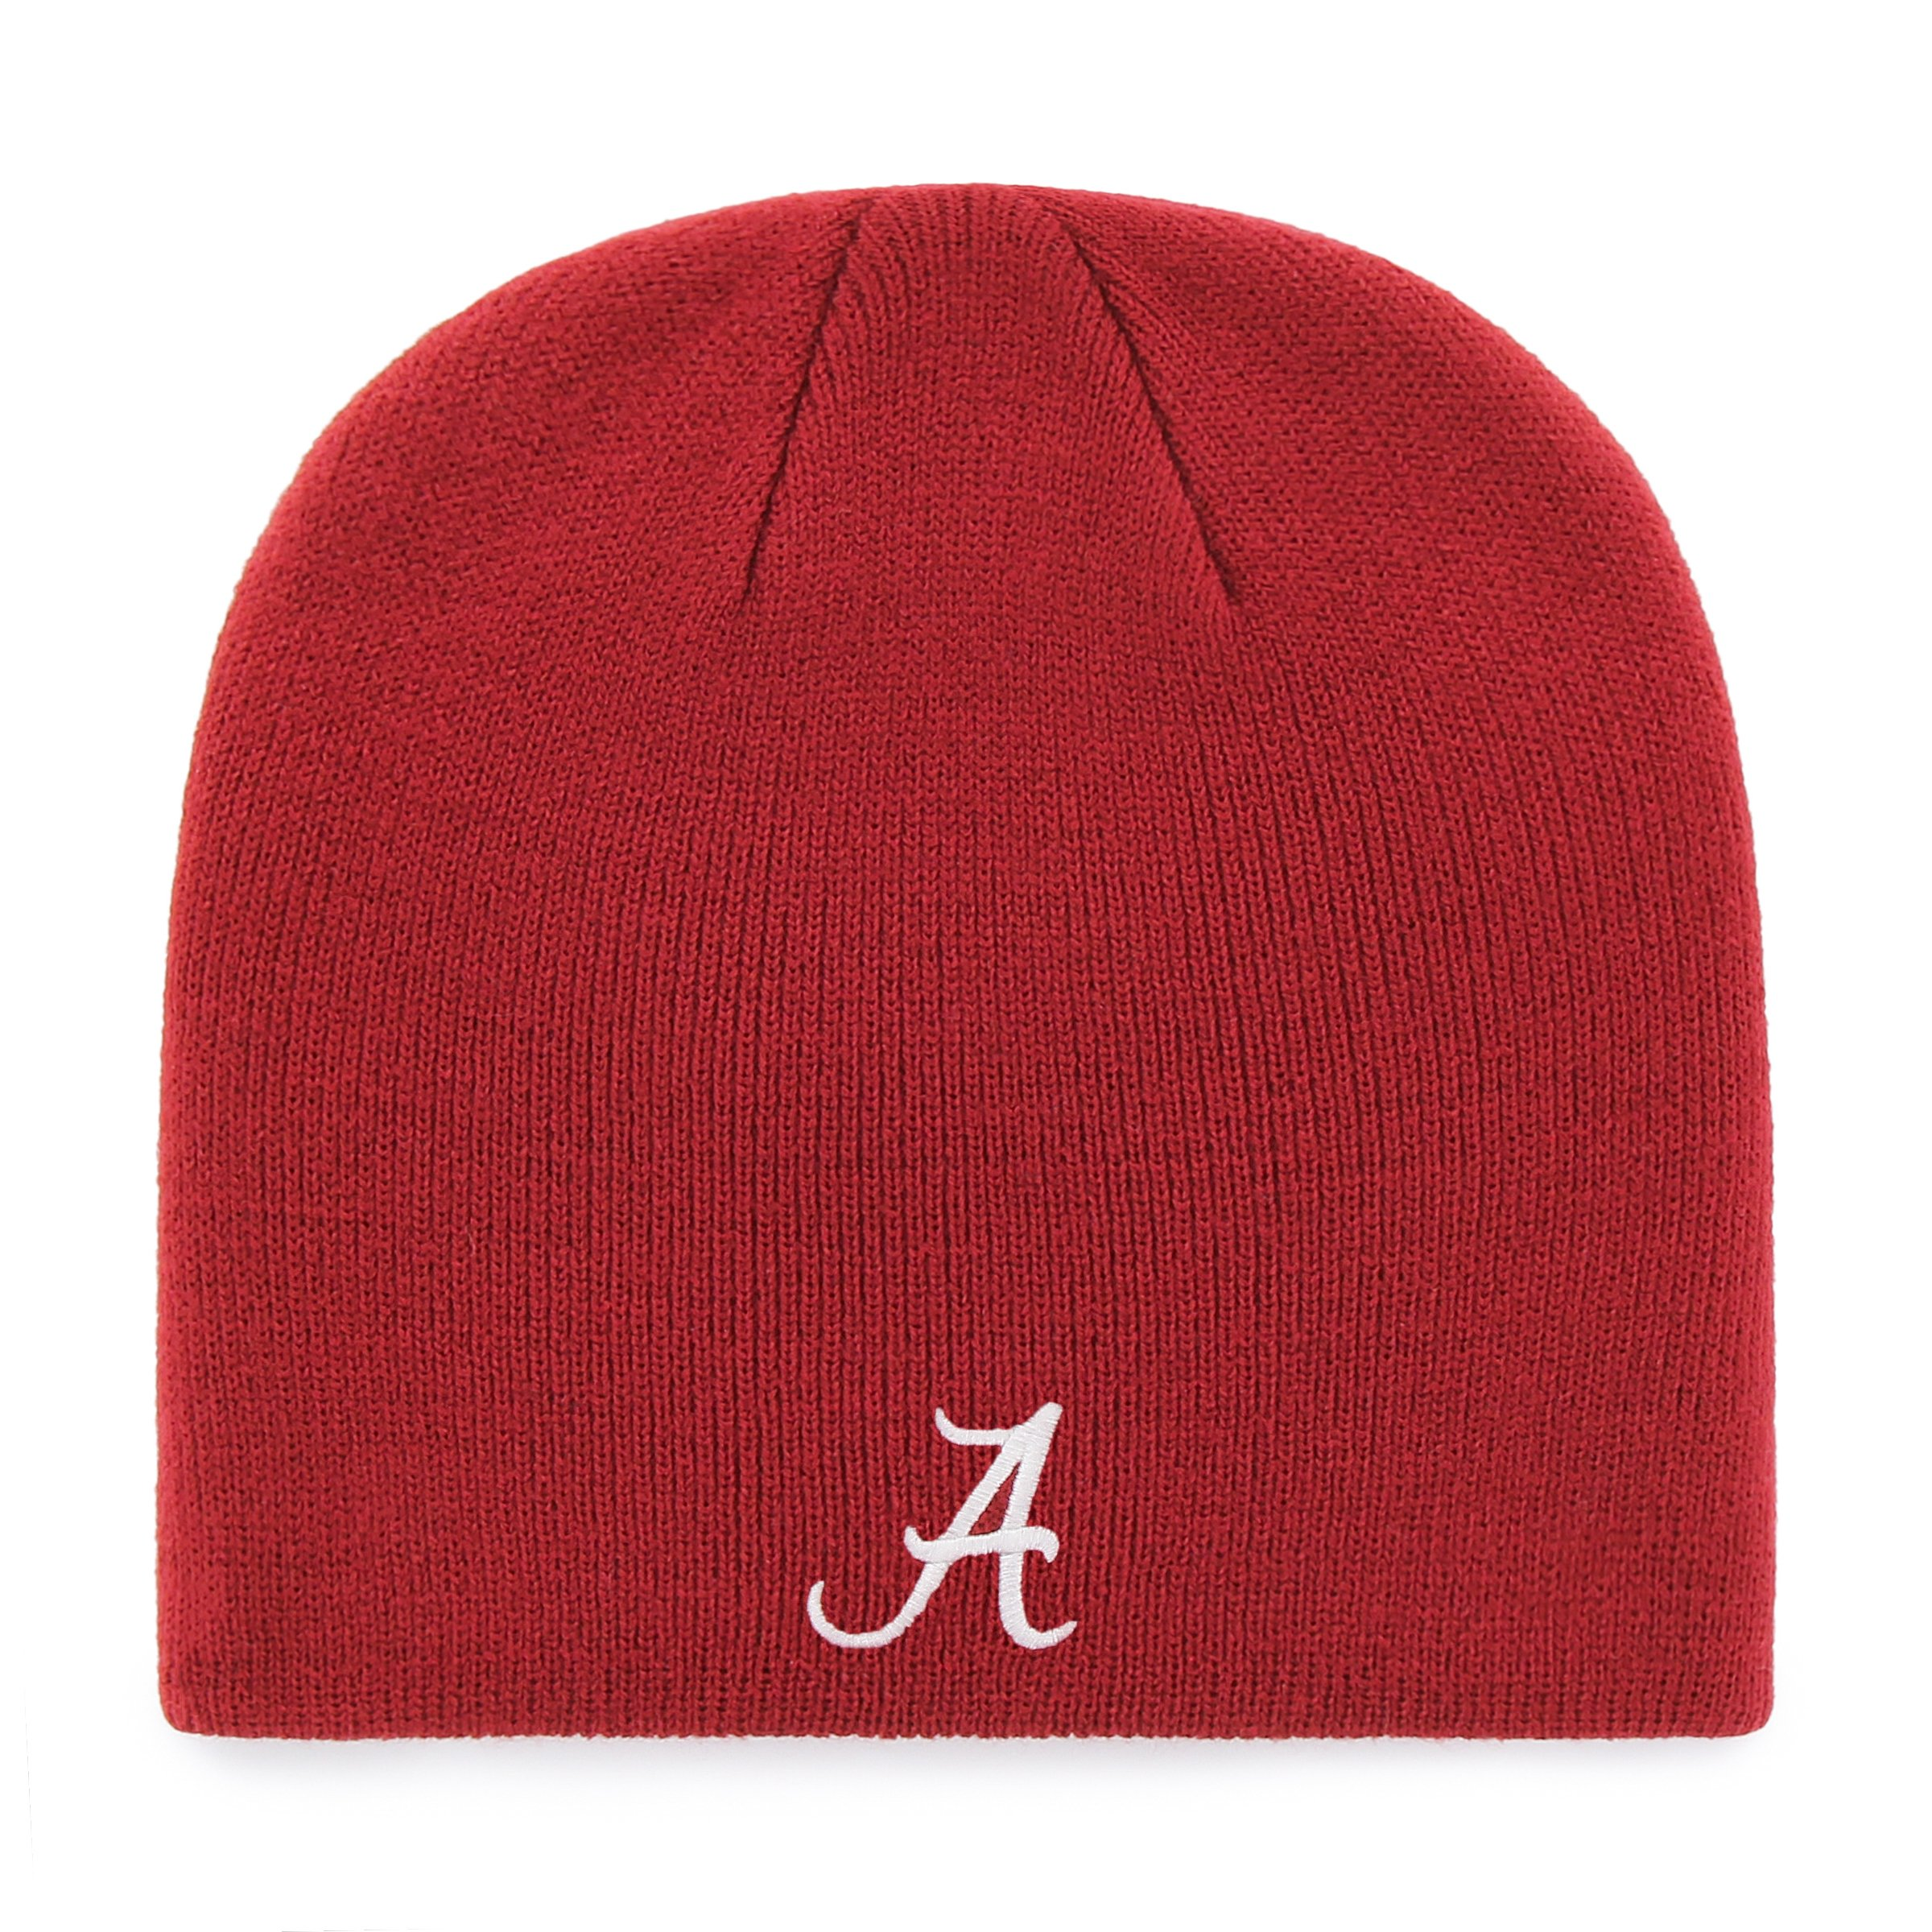 hot sale online b0a92 f7312 Galleon - OTS NCAA Alabama Crimson Tide Beanie Knit Cap, Razor Red, One Size